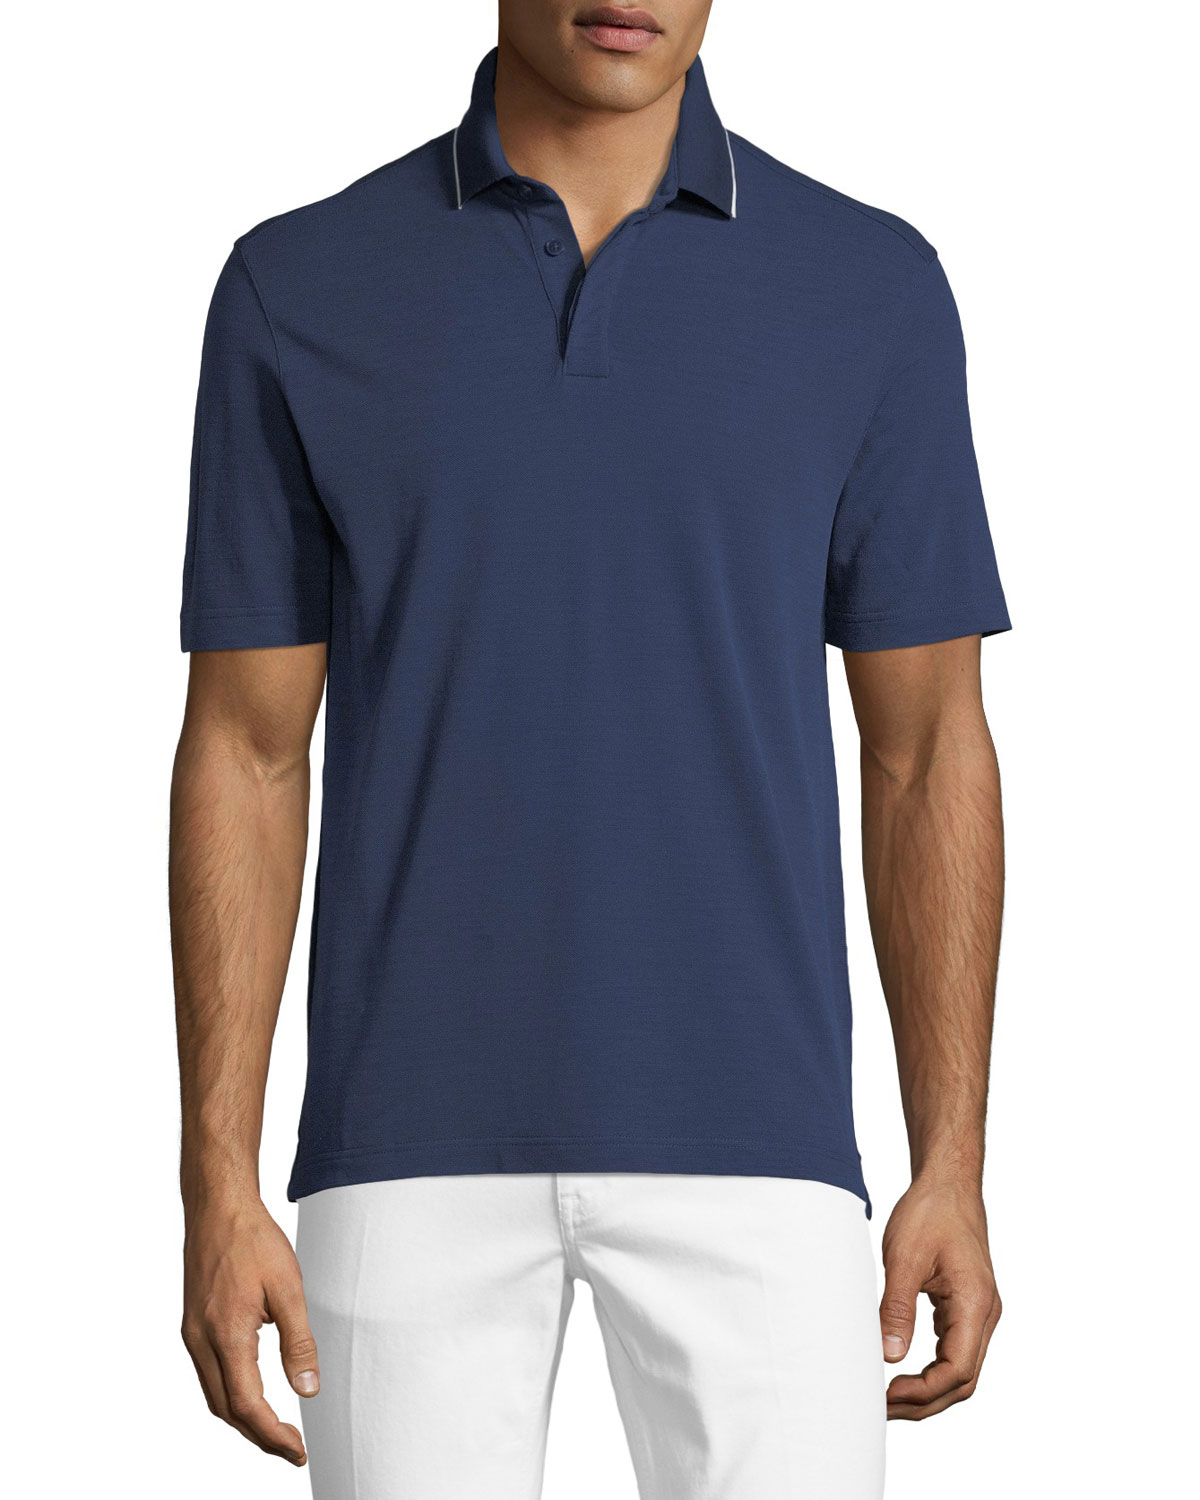 Z Zegna  HEATHERED WOOL POLO SHIRT